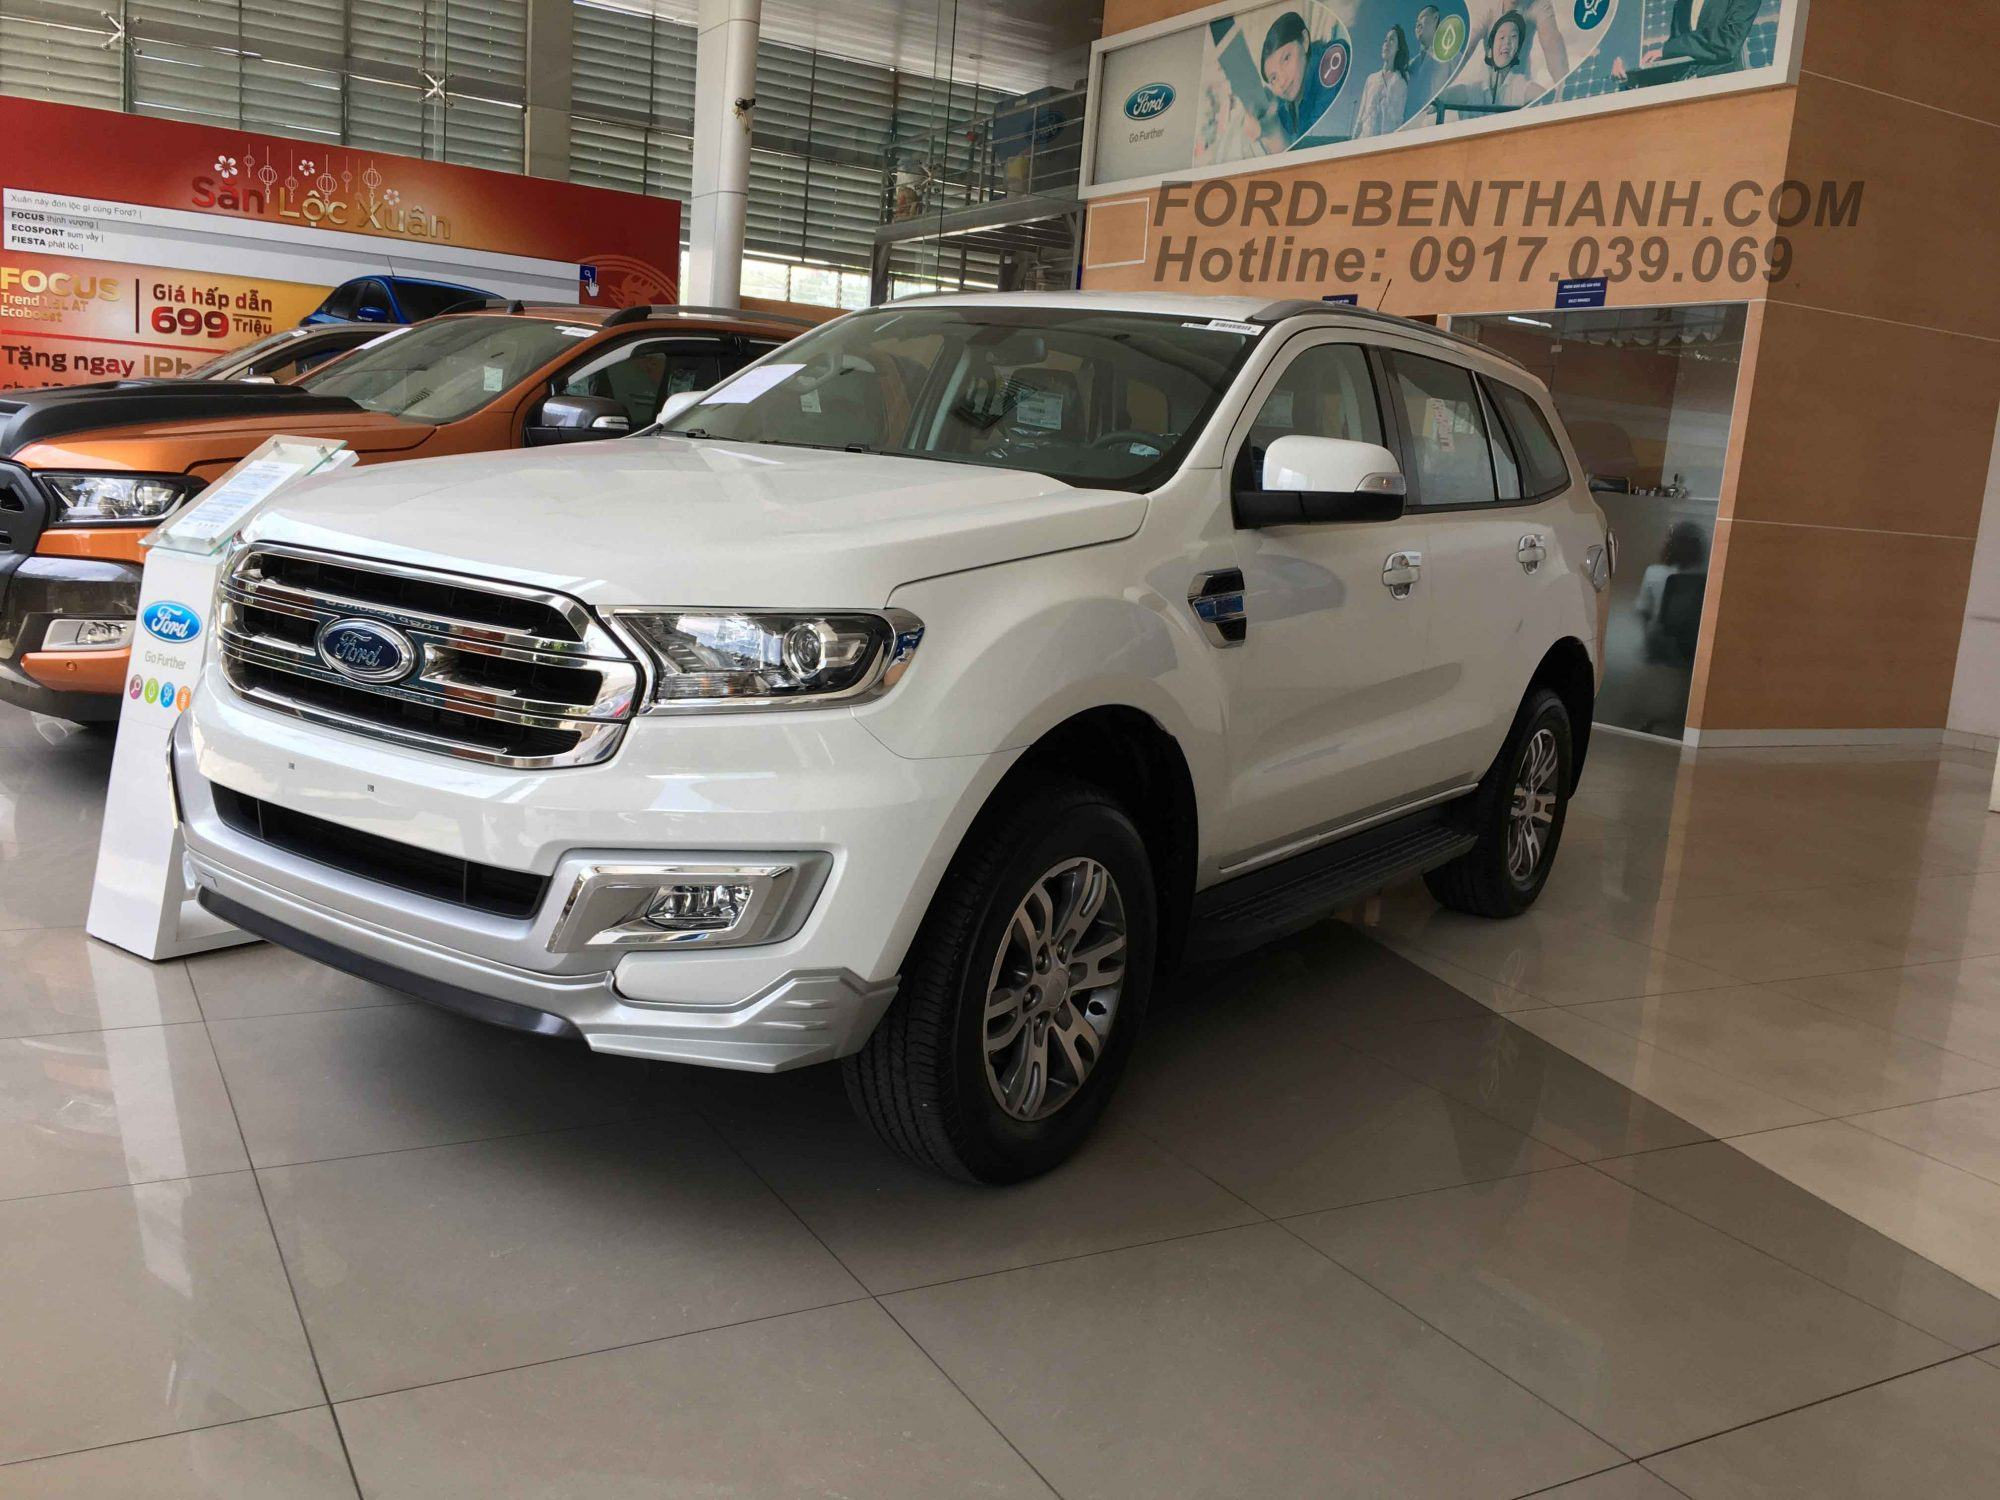 BodyKit Ford Everest 2017